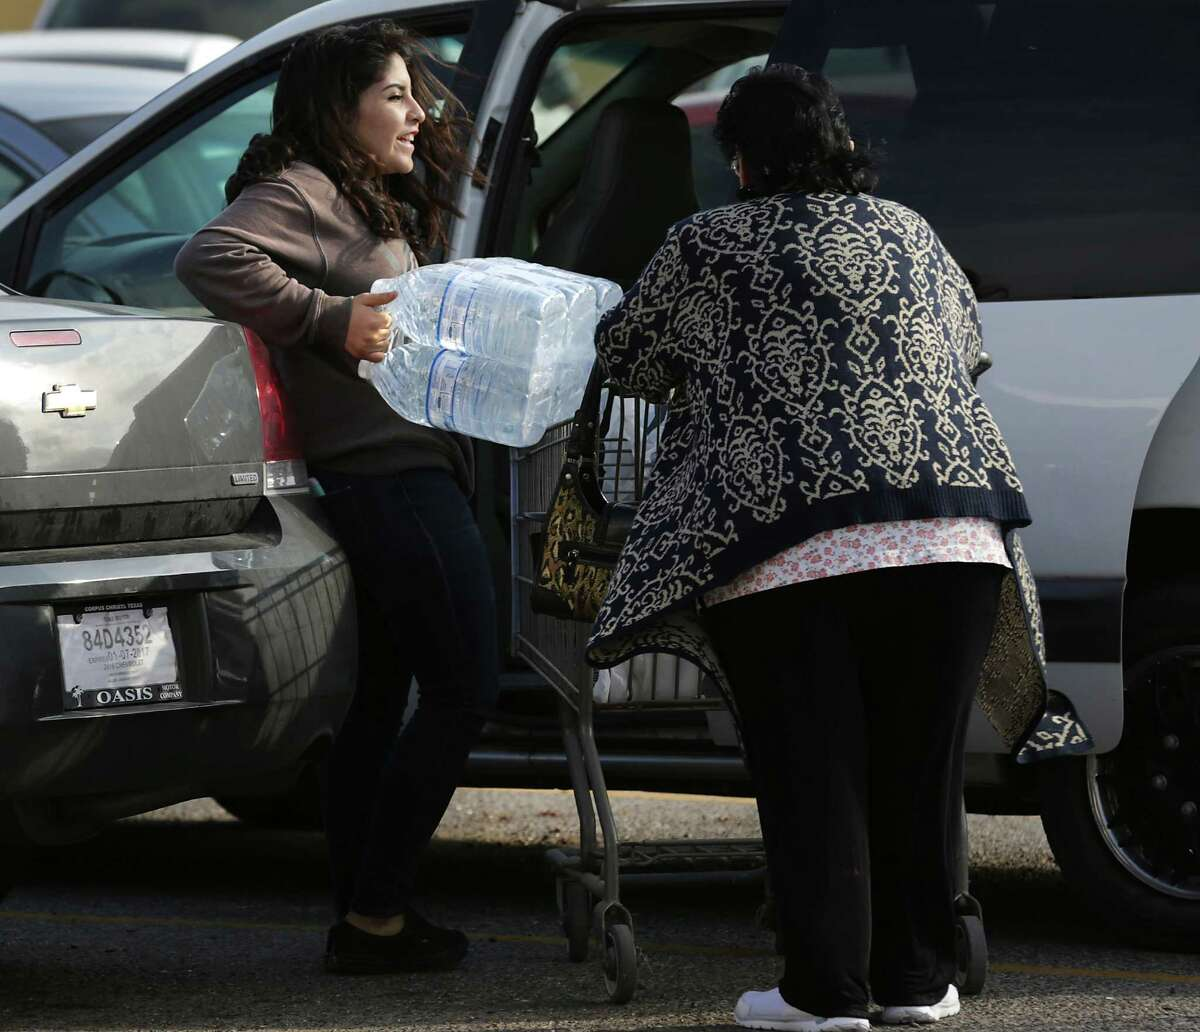 Lia Ramos, left, struggles with her family's limit of water purchased at an HEB as Corpus Christi deals with it's public water system being contaminated. Her great grandmother Almo Ramos is at right.